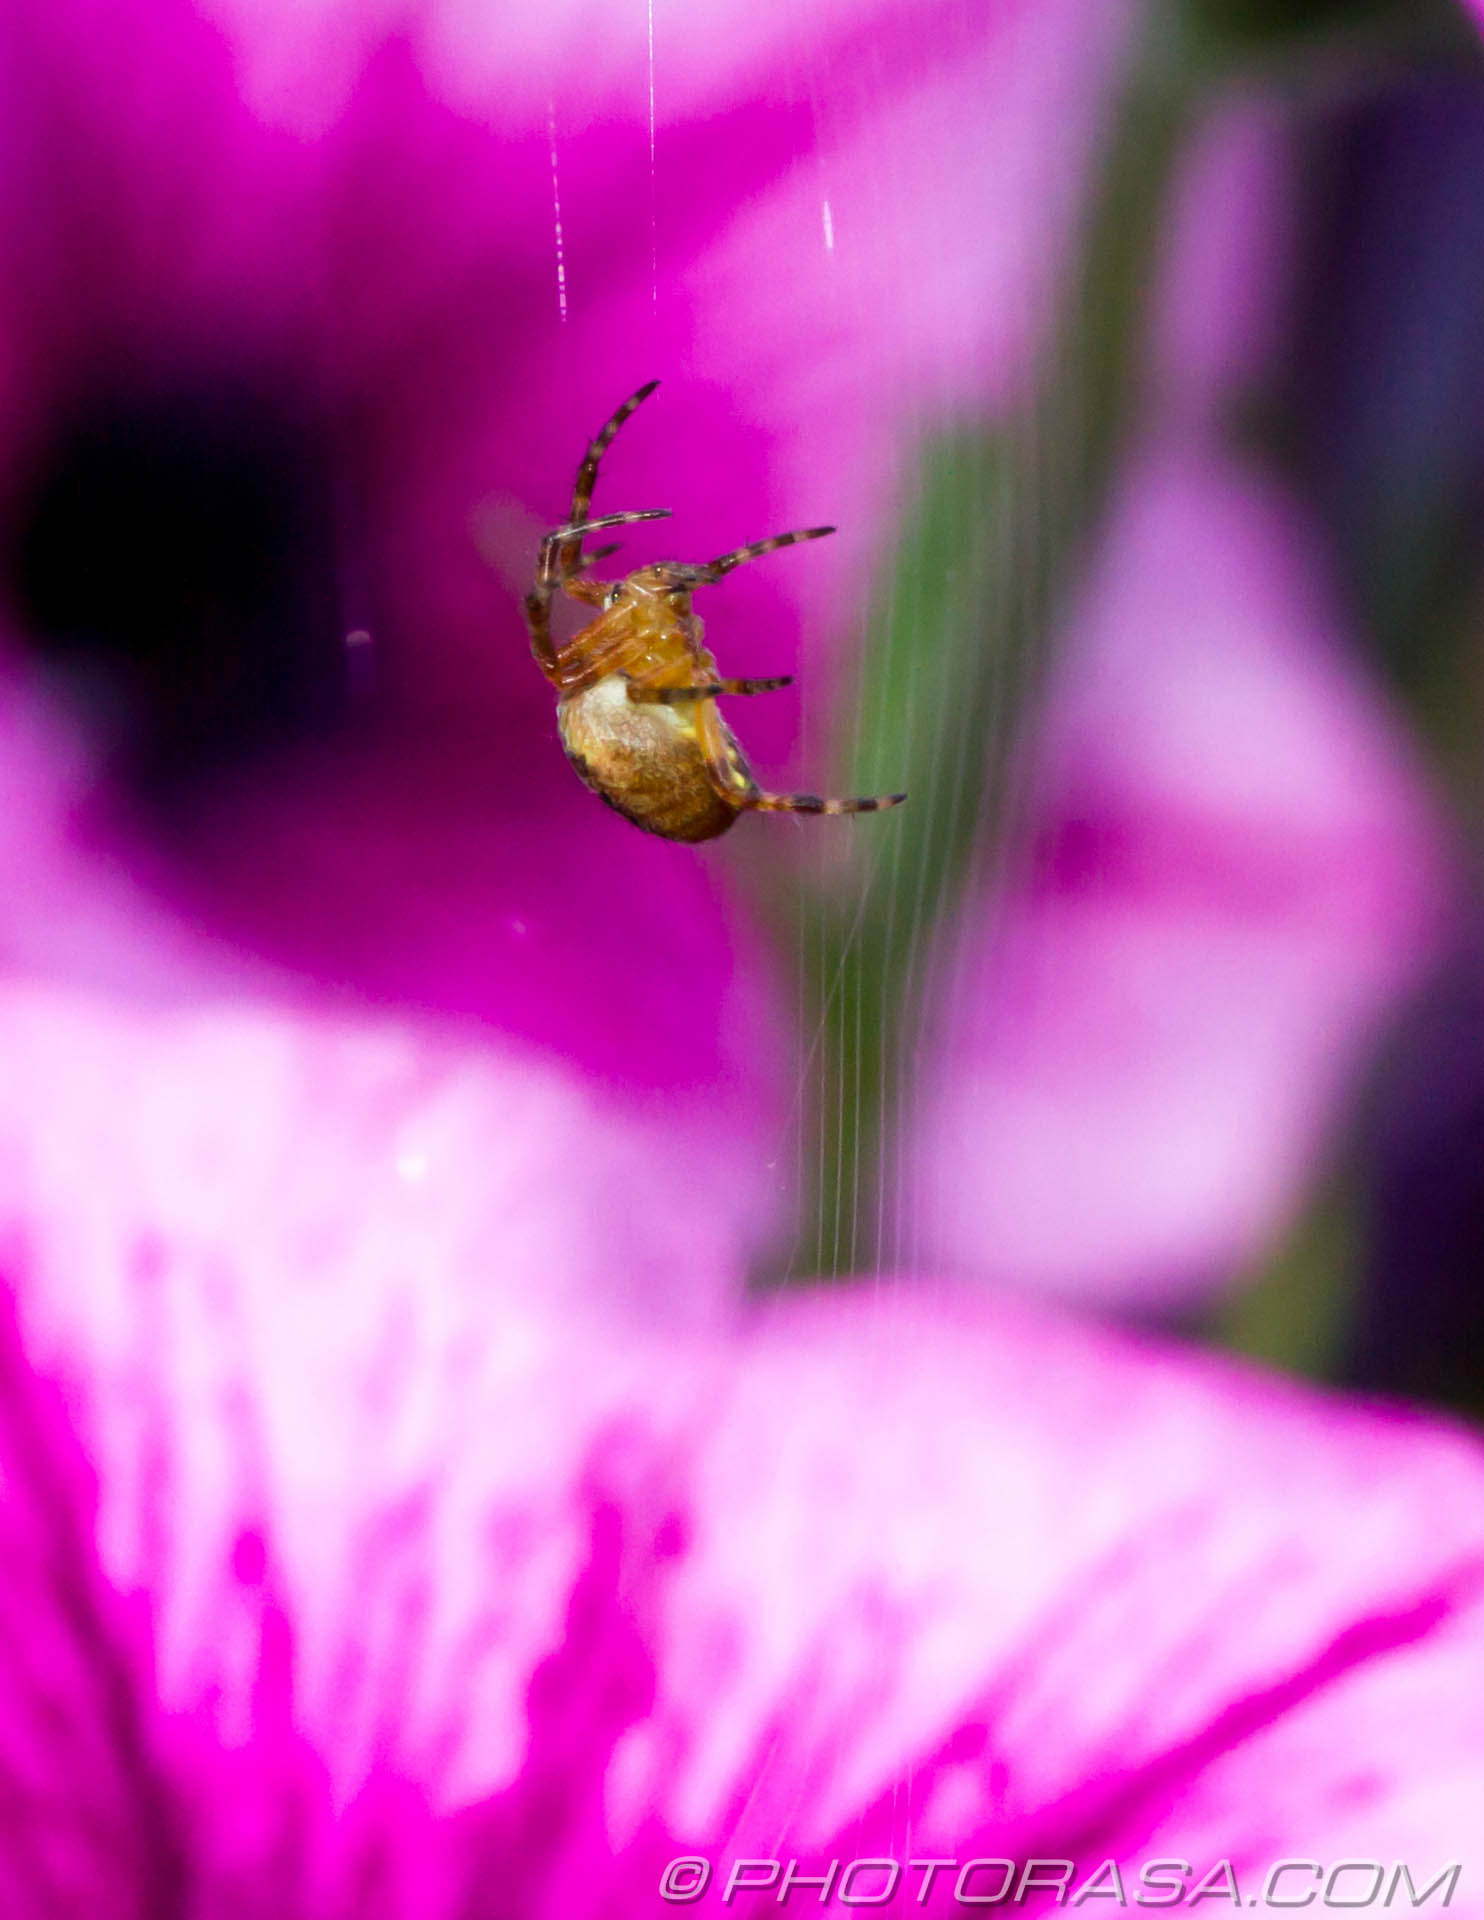 https://photorasa.com/spider-petunias/spider-making-web-in-petunias/